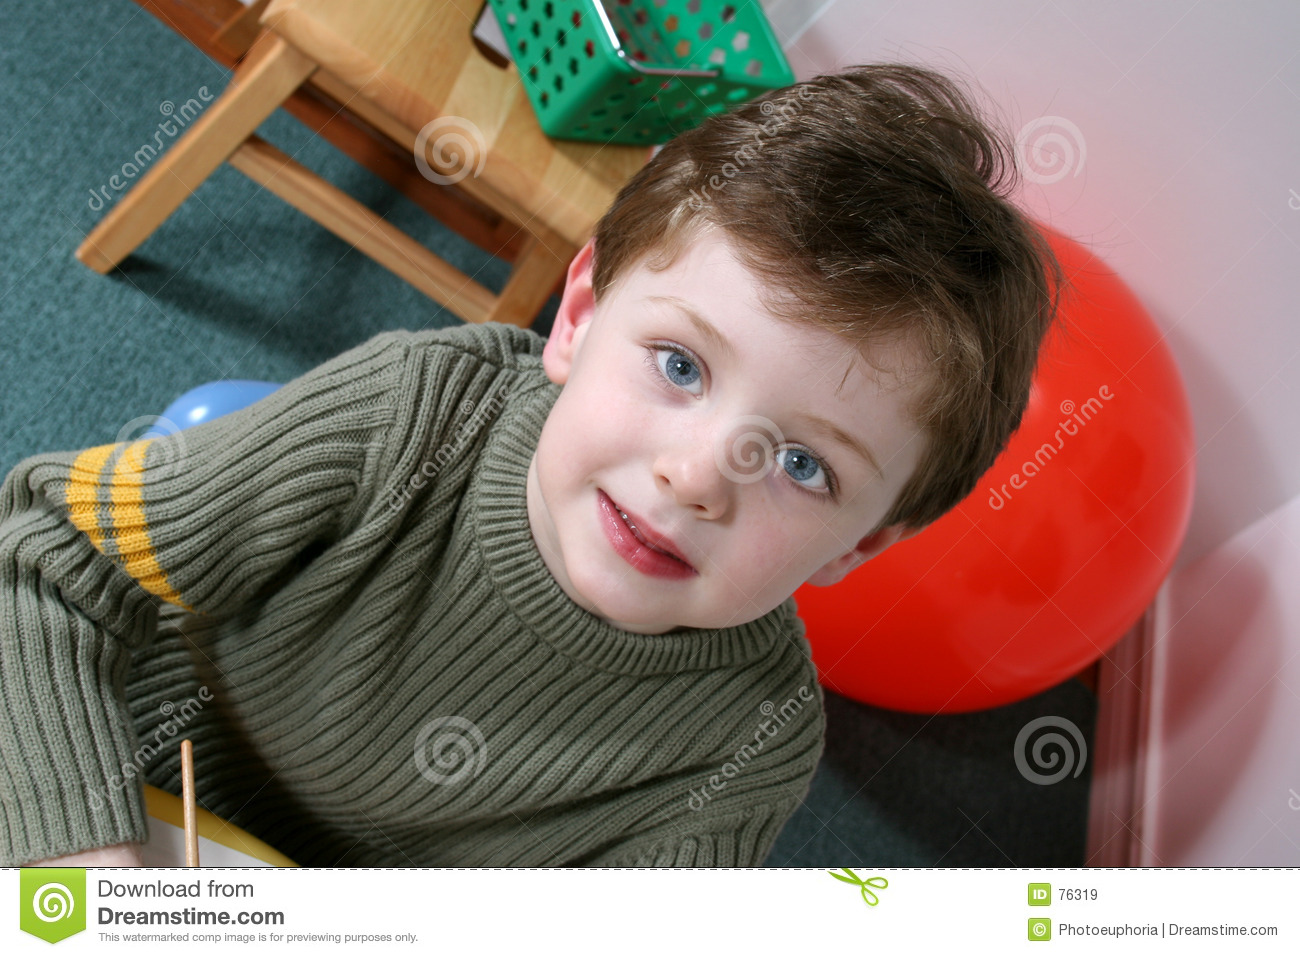 Adorable Four Year Old Boy with Blond Hair Blue Eyes